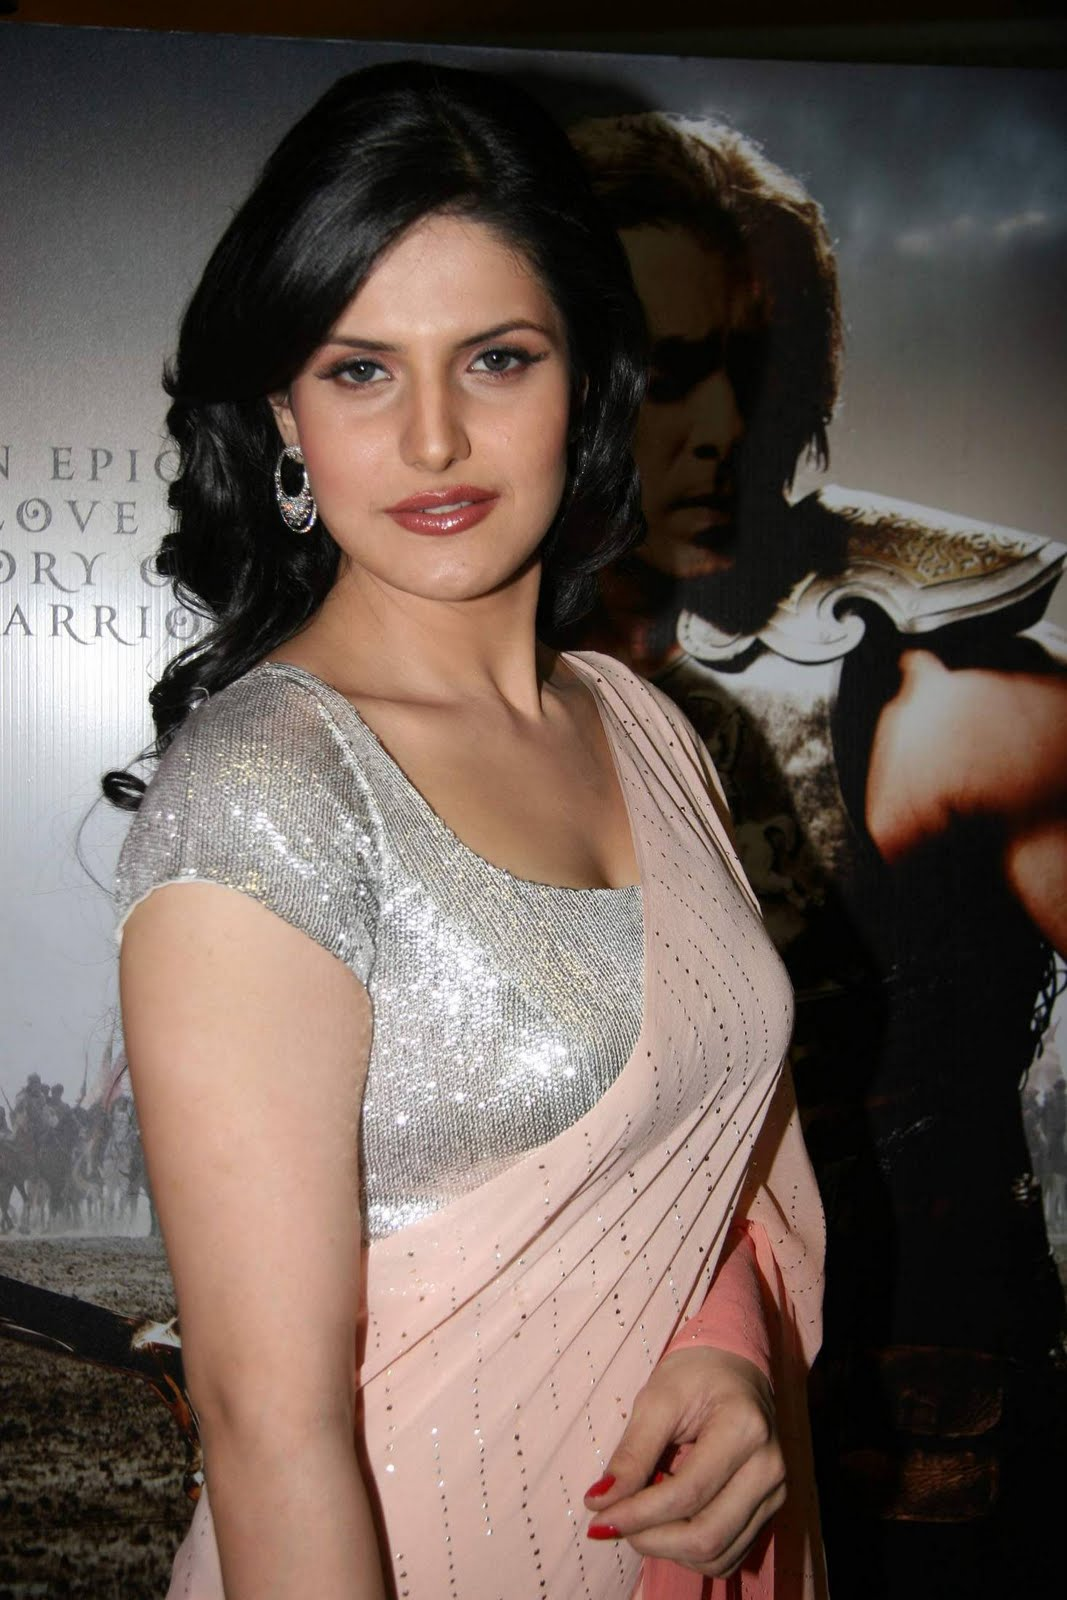 http://3.bp.blogspot.com/-NlP7cEeHkHU/To8KKMcxDQI/AAAAAAAALGo/_iCj4i12iFI/s1600/Bollywood-Actress-Zarine-Khan--Saree-High-quality-Pos_actressinsareepos.blogspot.com_8.jpg